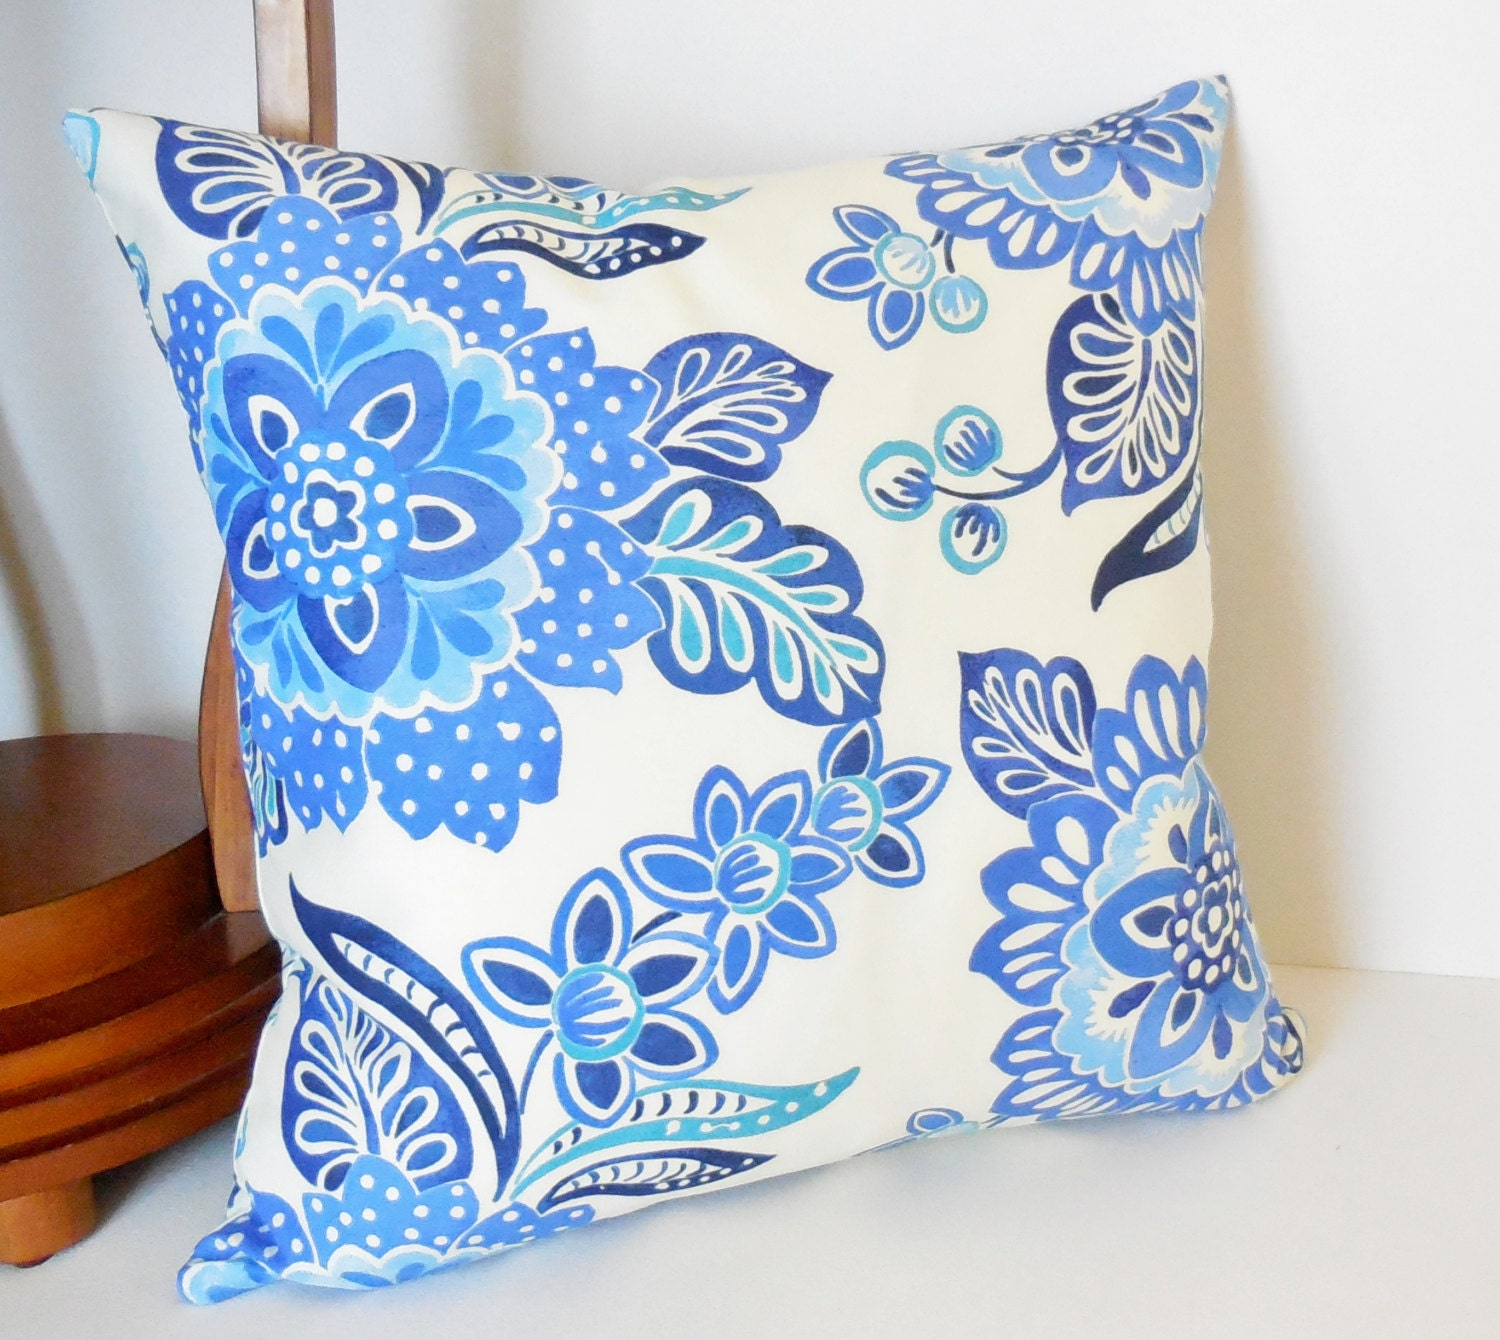 Pillows Decorative Throw Pillows Large Dark Blue by tillnextwinter